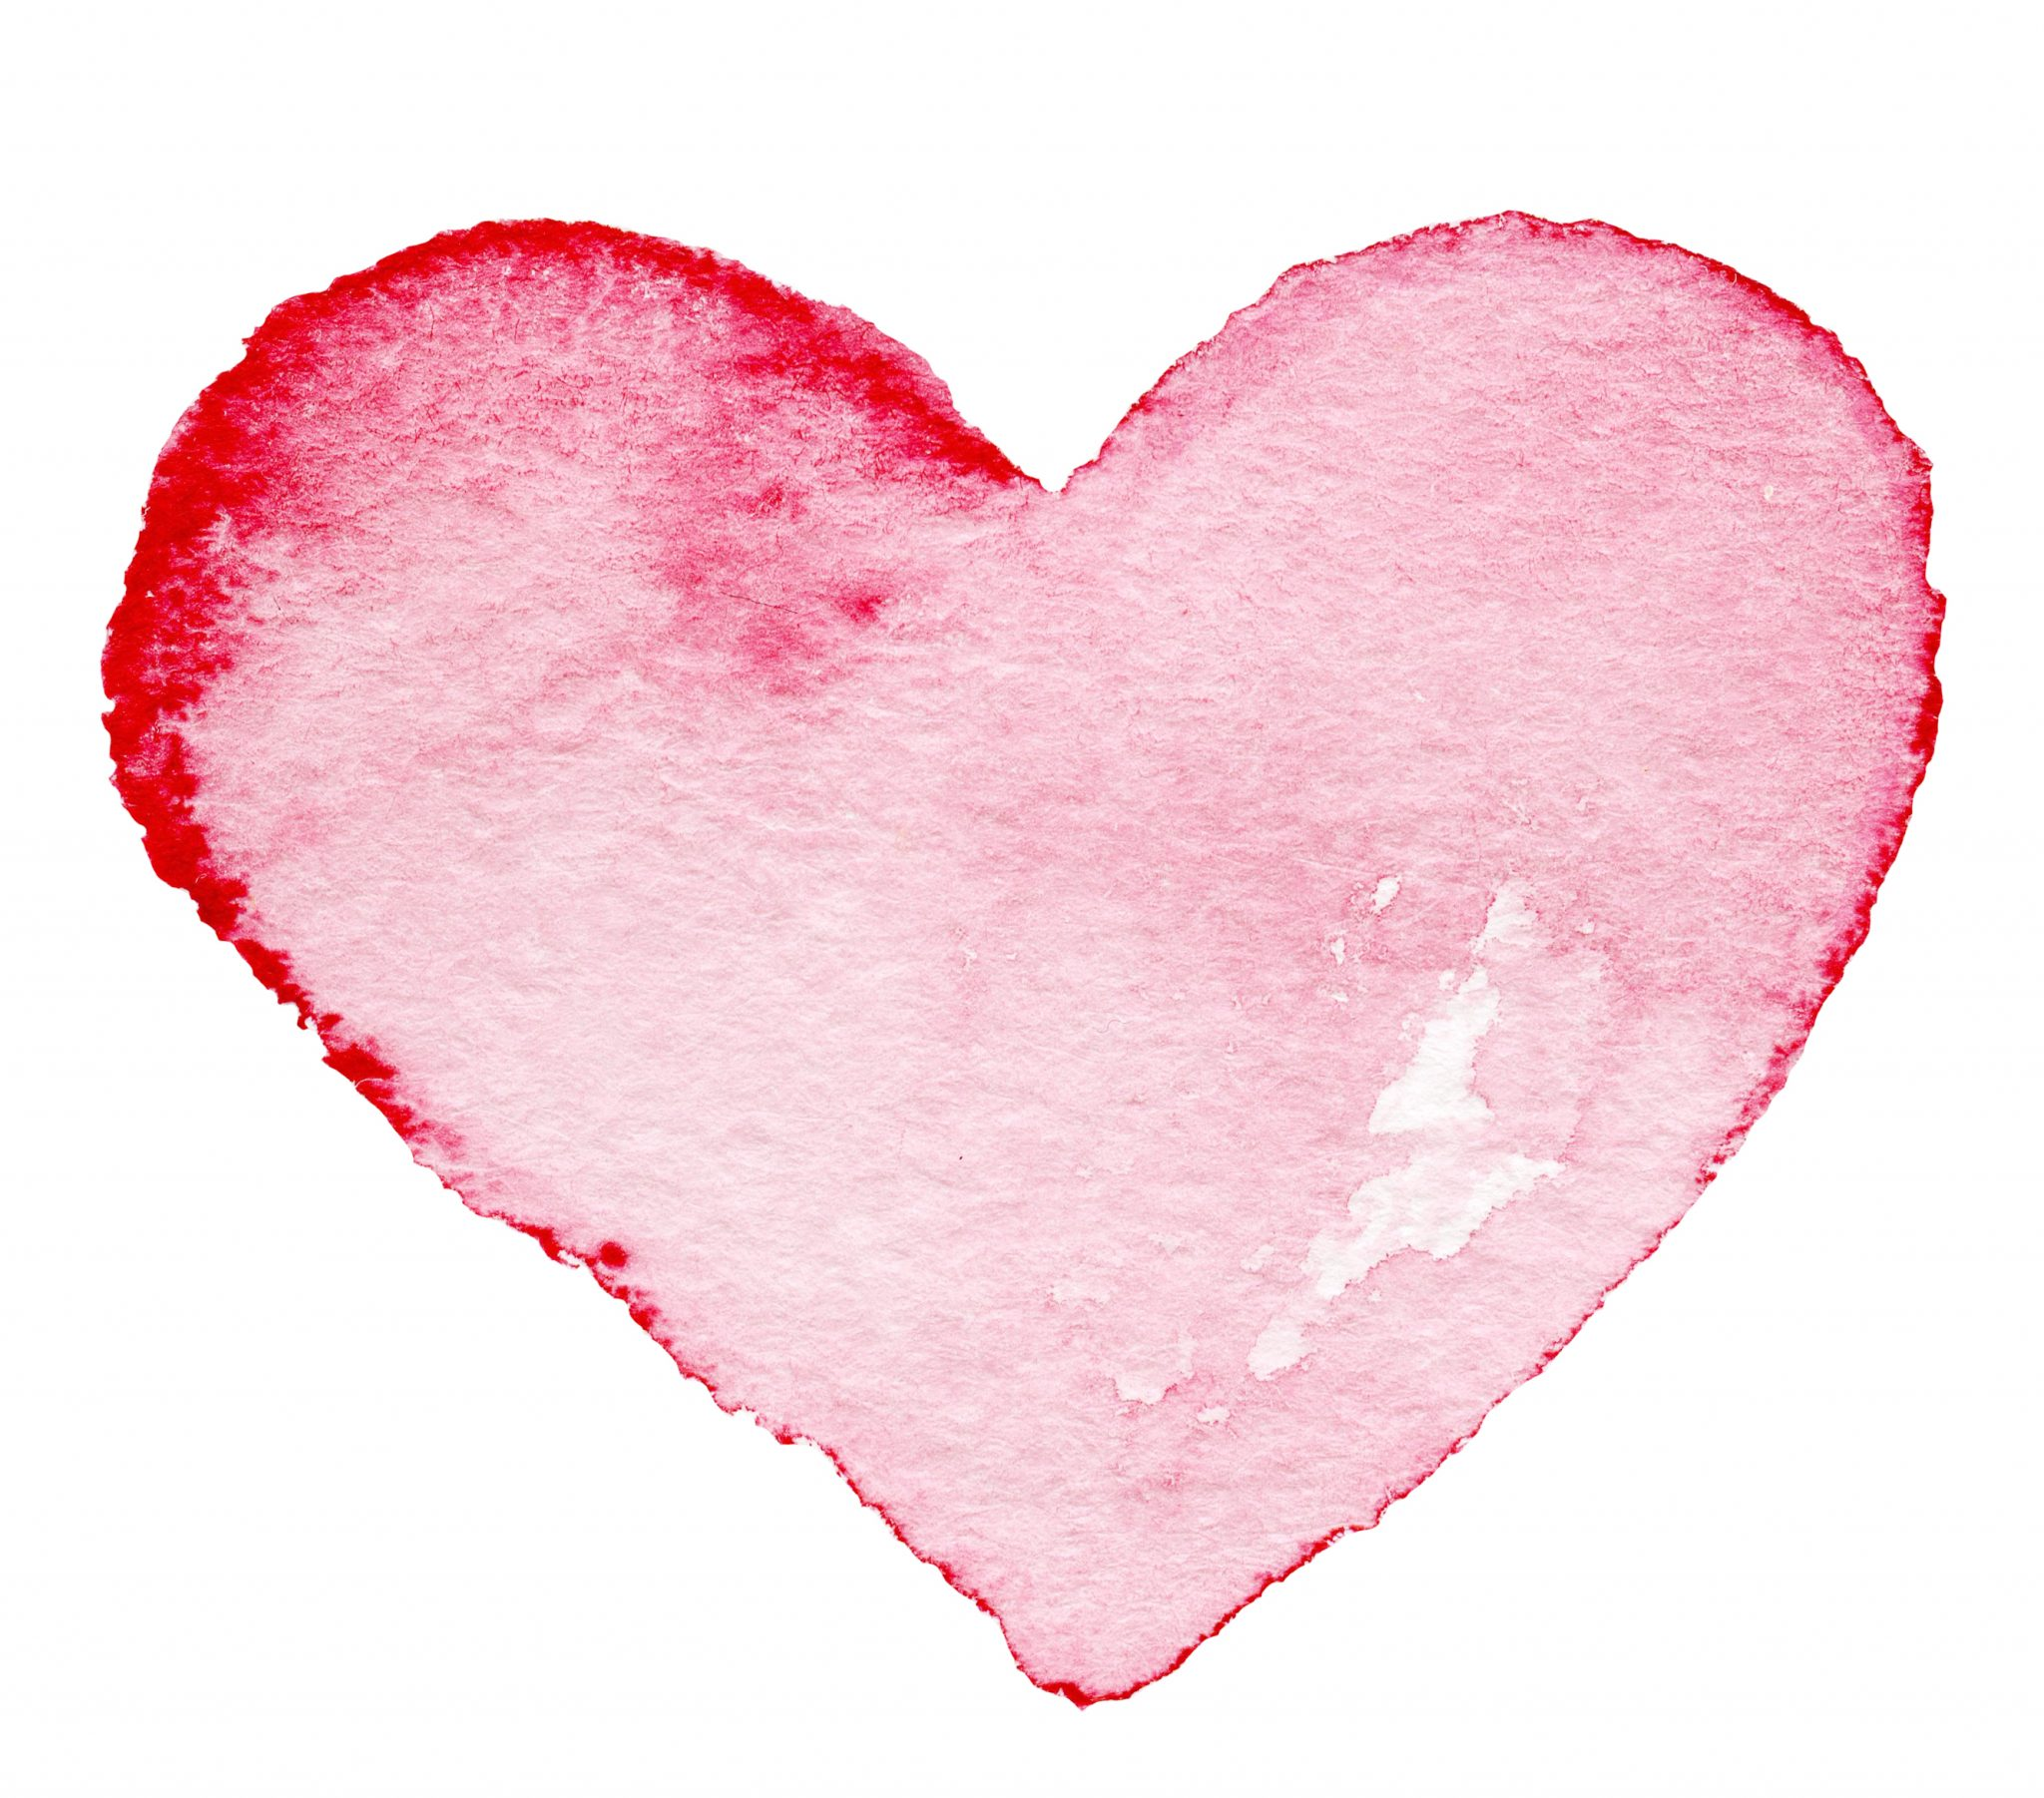 watercolor painted red heart symbol for your design heart